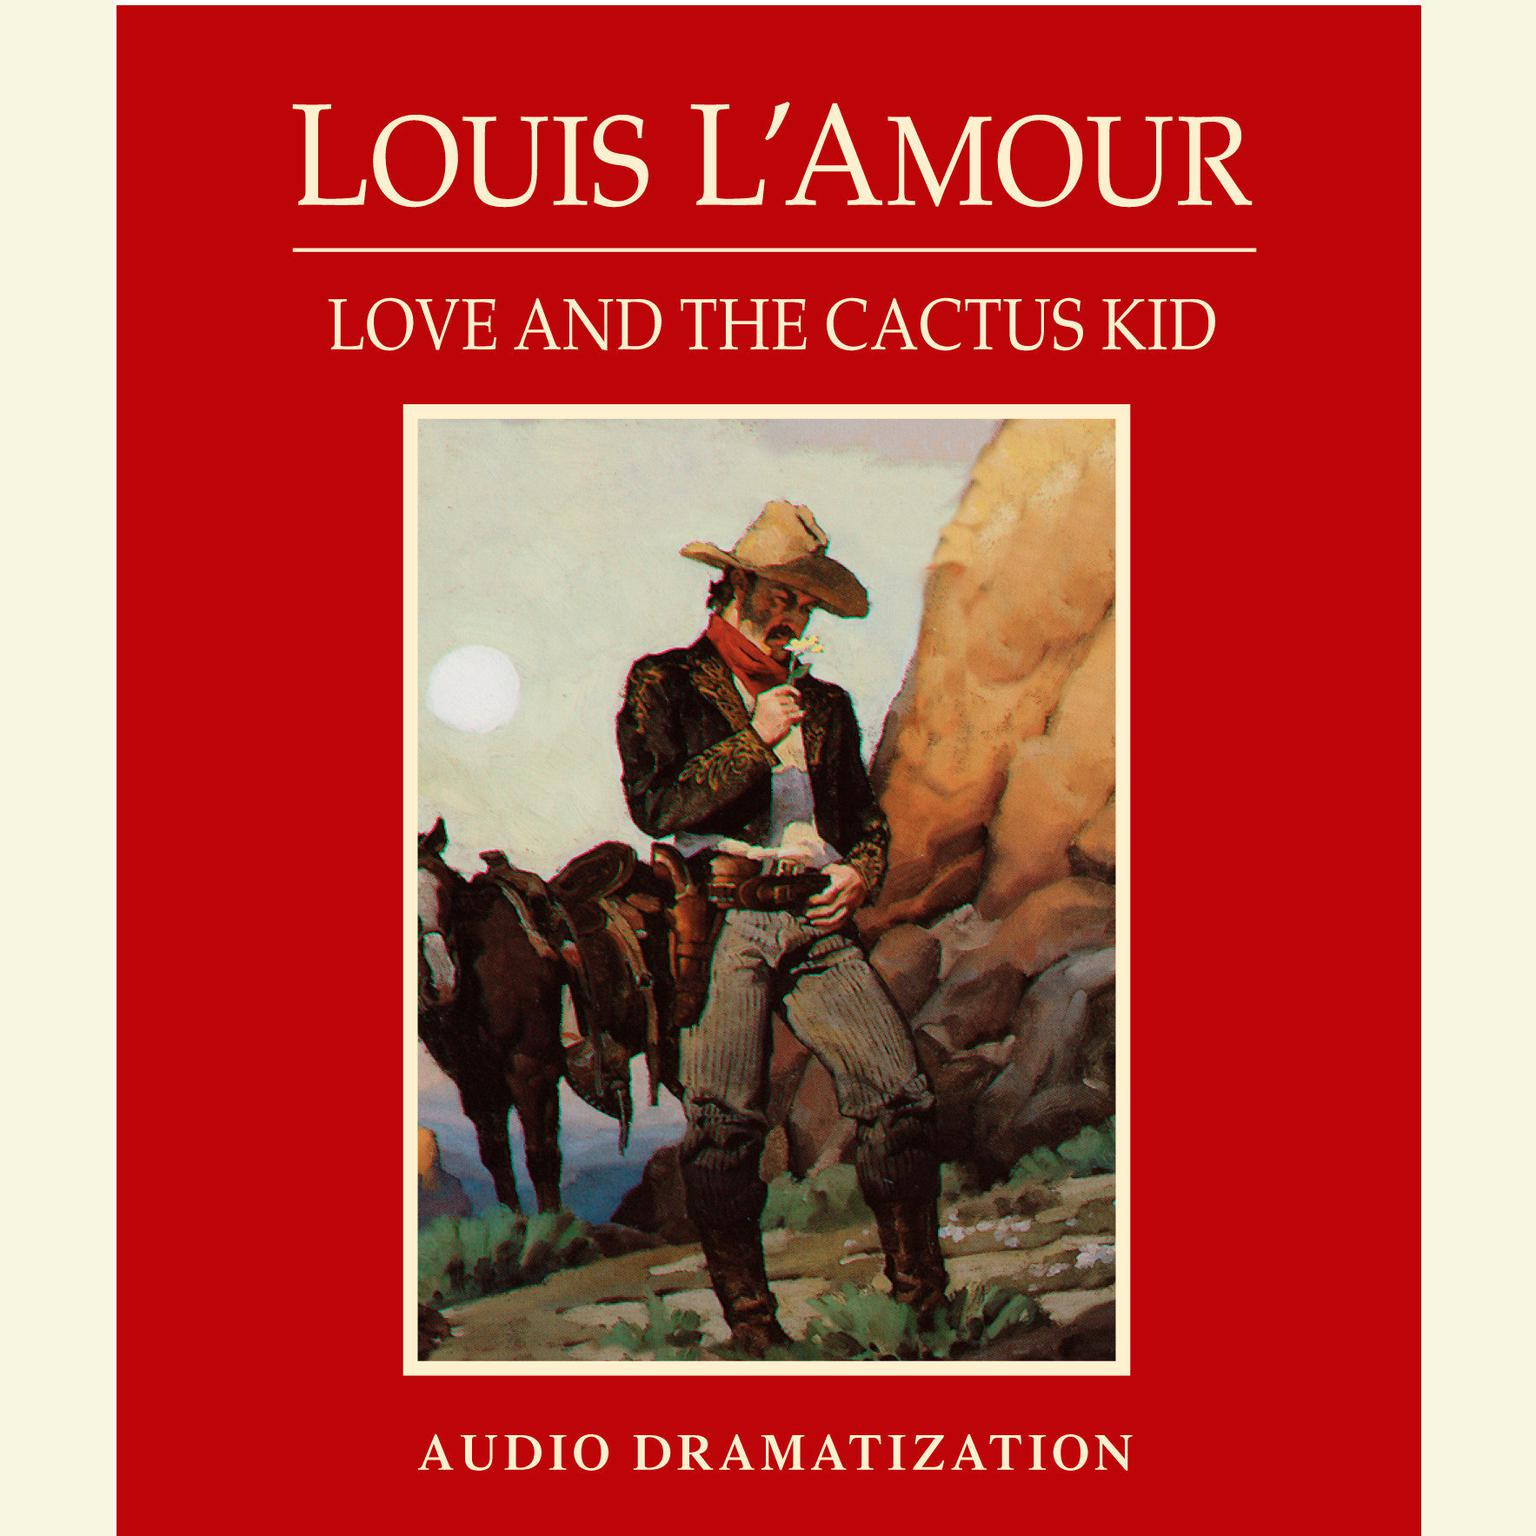 Love and the Cactus Kid (Abridged) Audiobook, by Louis L'Amour